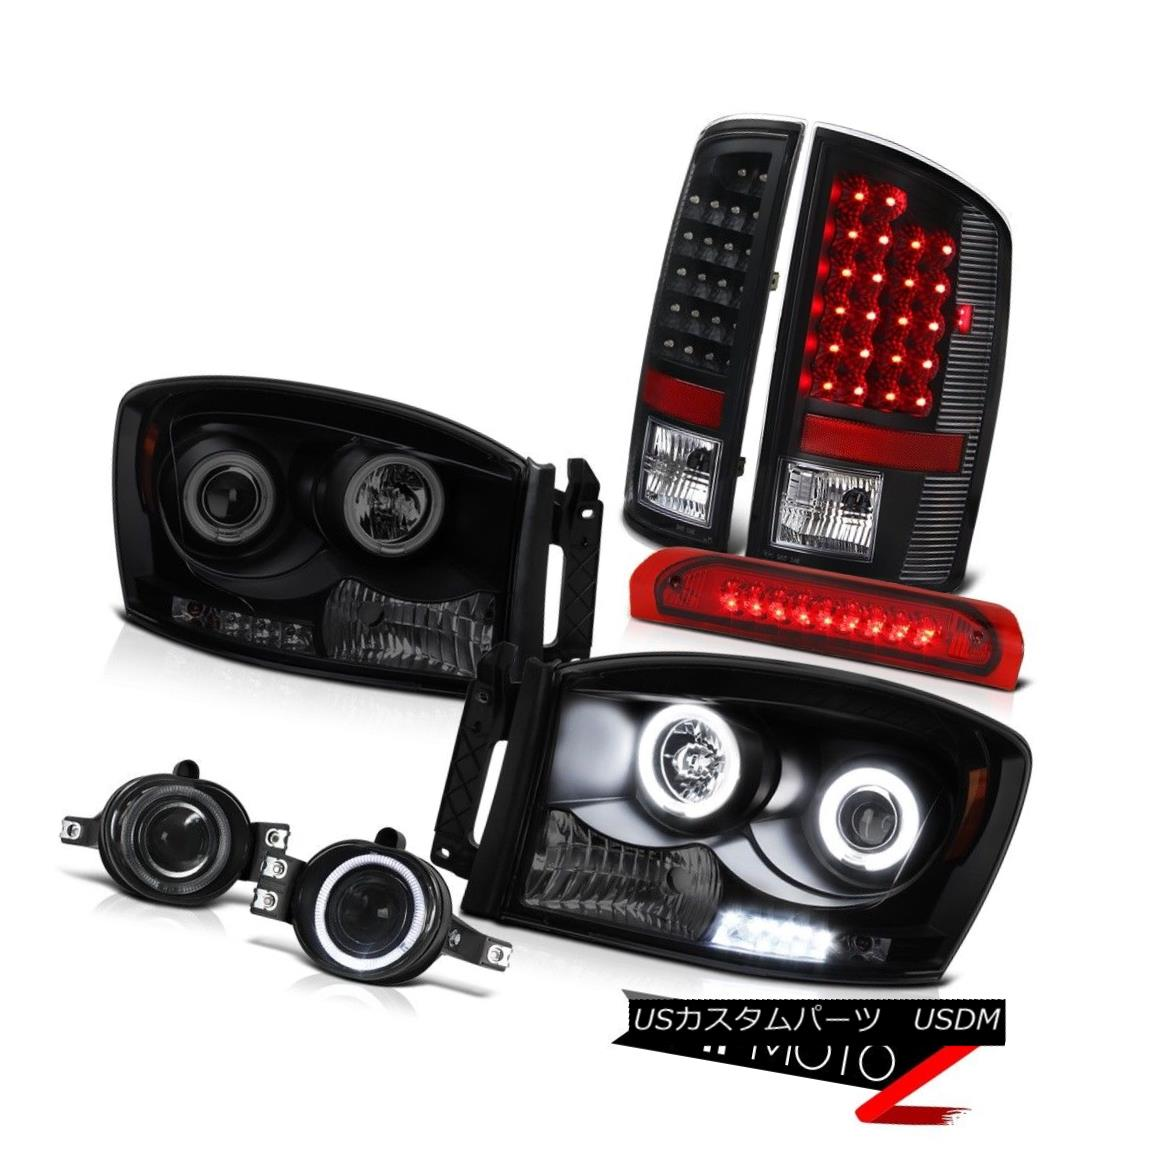 ヘッドライト CCFL Halo DRL Headlight LED Tail Light Foglights Red Third Ram V8 WS 2007 2008 CCFL Halo DRLヘッドライトLEDテールライトフォグライトRed Third Ram V8 WS 2007 2008